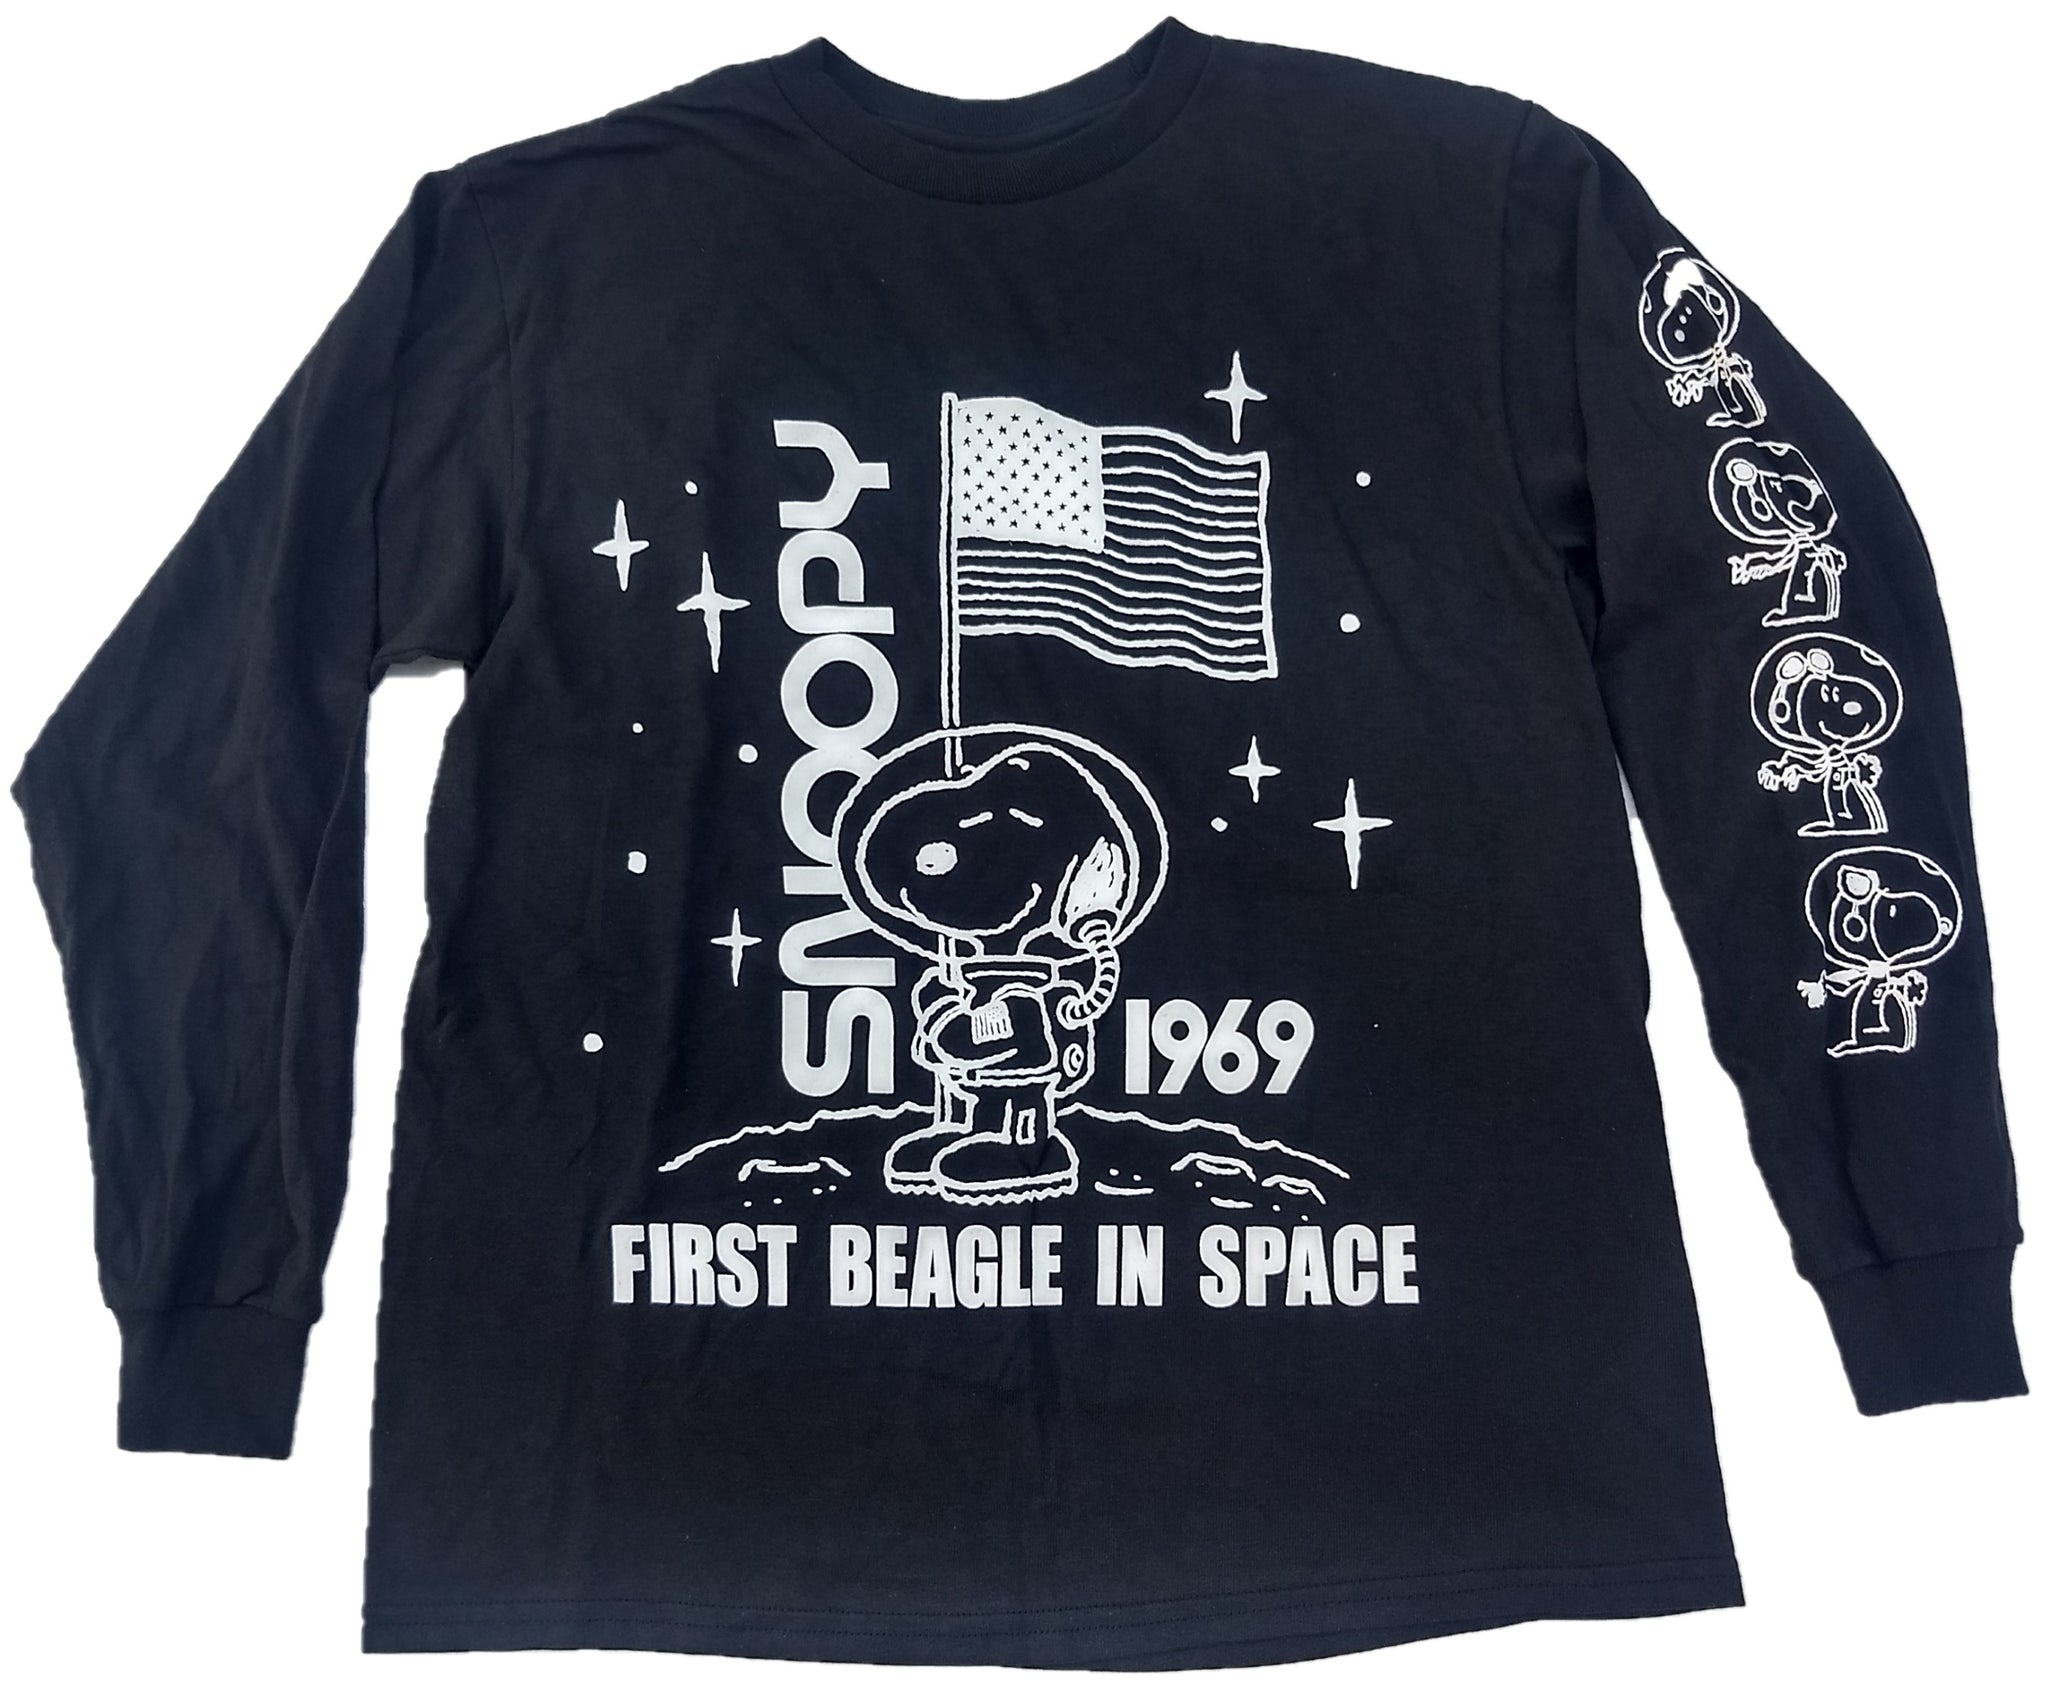 Snoopy First Beagle in Space 1969 Peanuts Mens T-Shirt